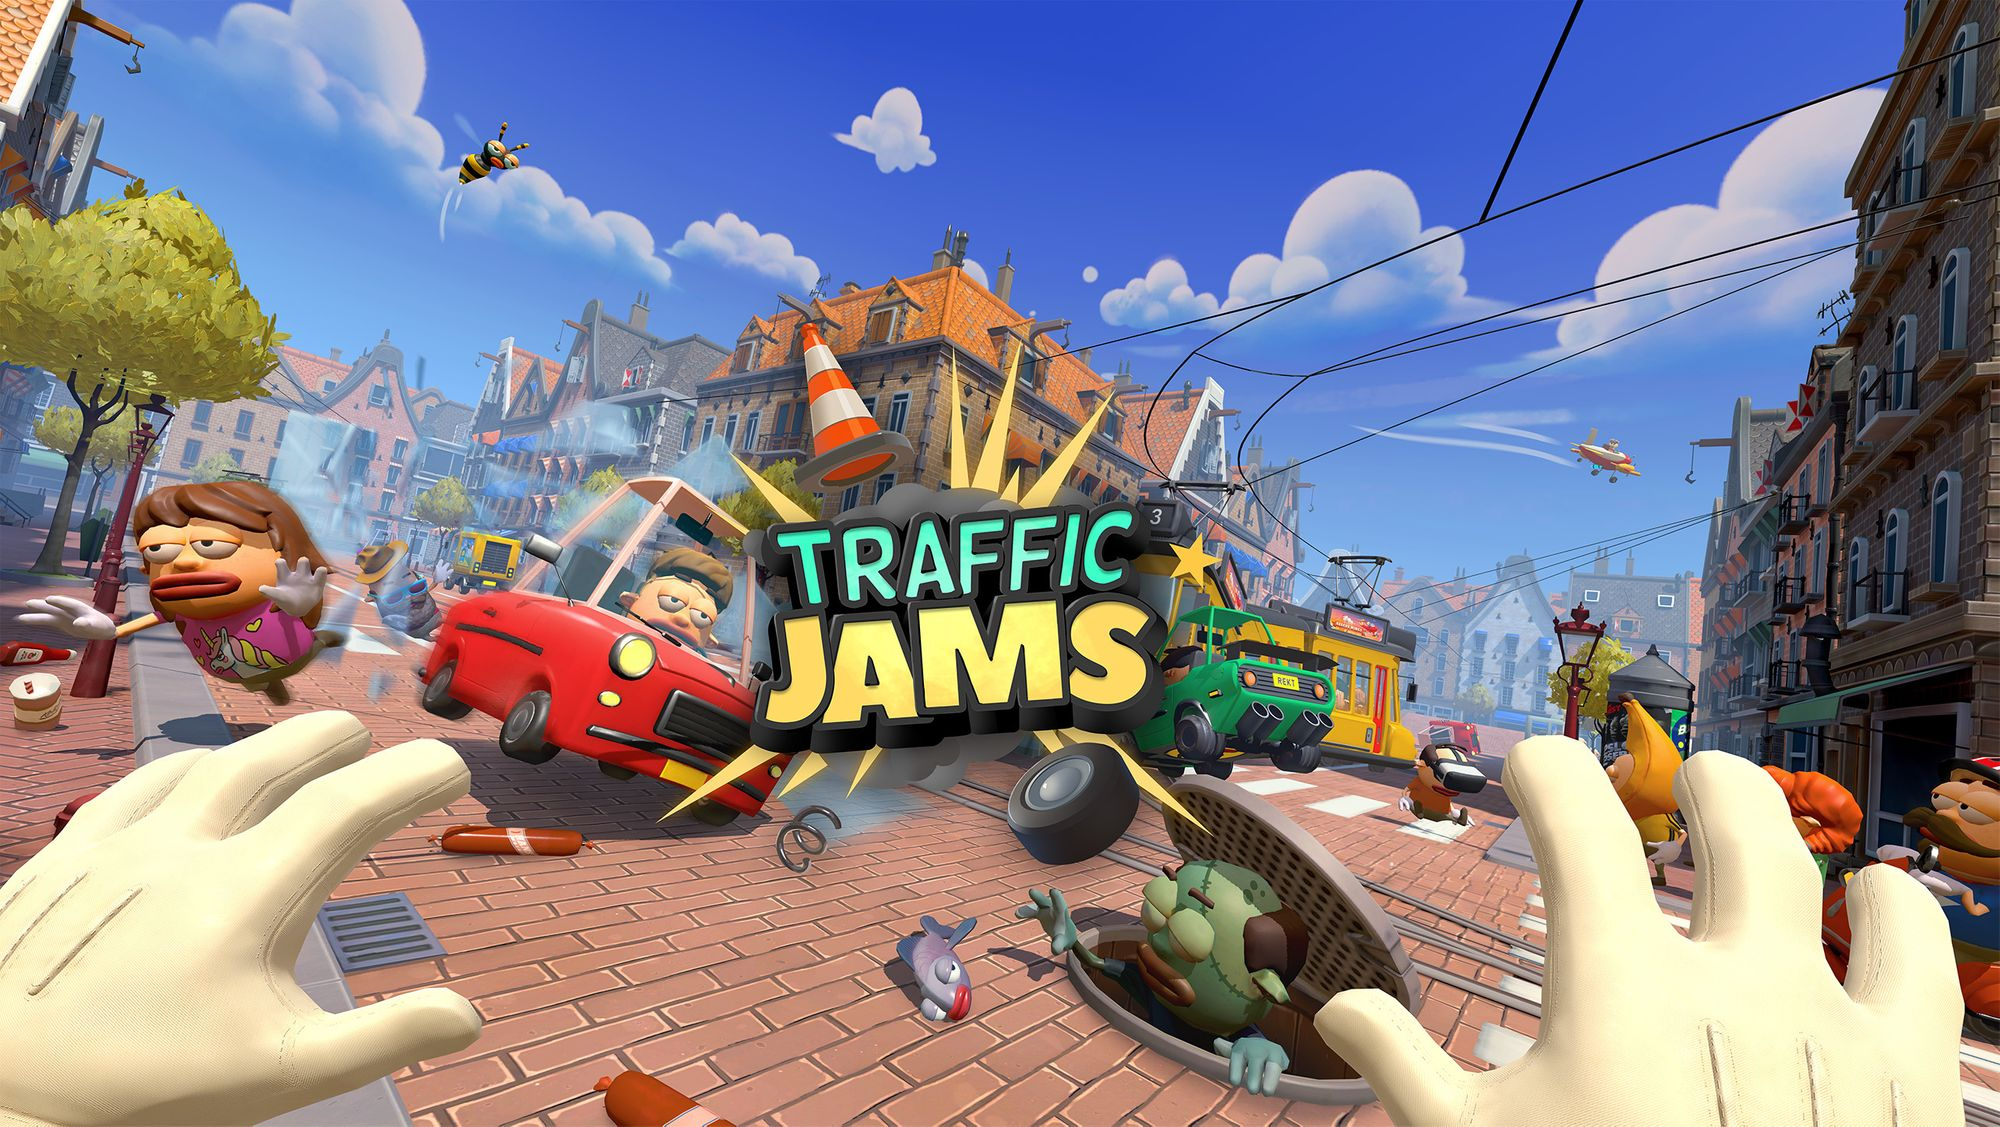 Traffic Jams is a wacky VR action/arcade game developed by Little Chicken Game Company and published by Arizona Sunshine developer Vertigo Games. The game launched last Thursday for SteamVR and Oculus Quest & Rift (with cross-buy support).